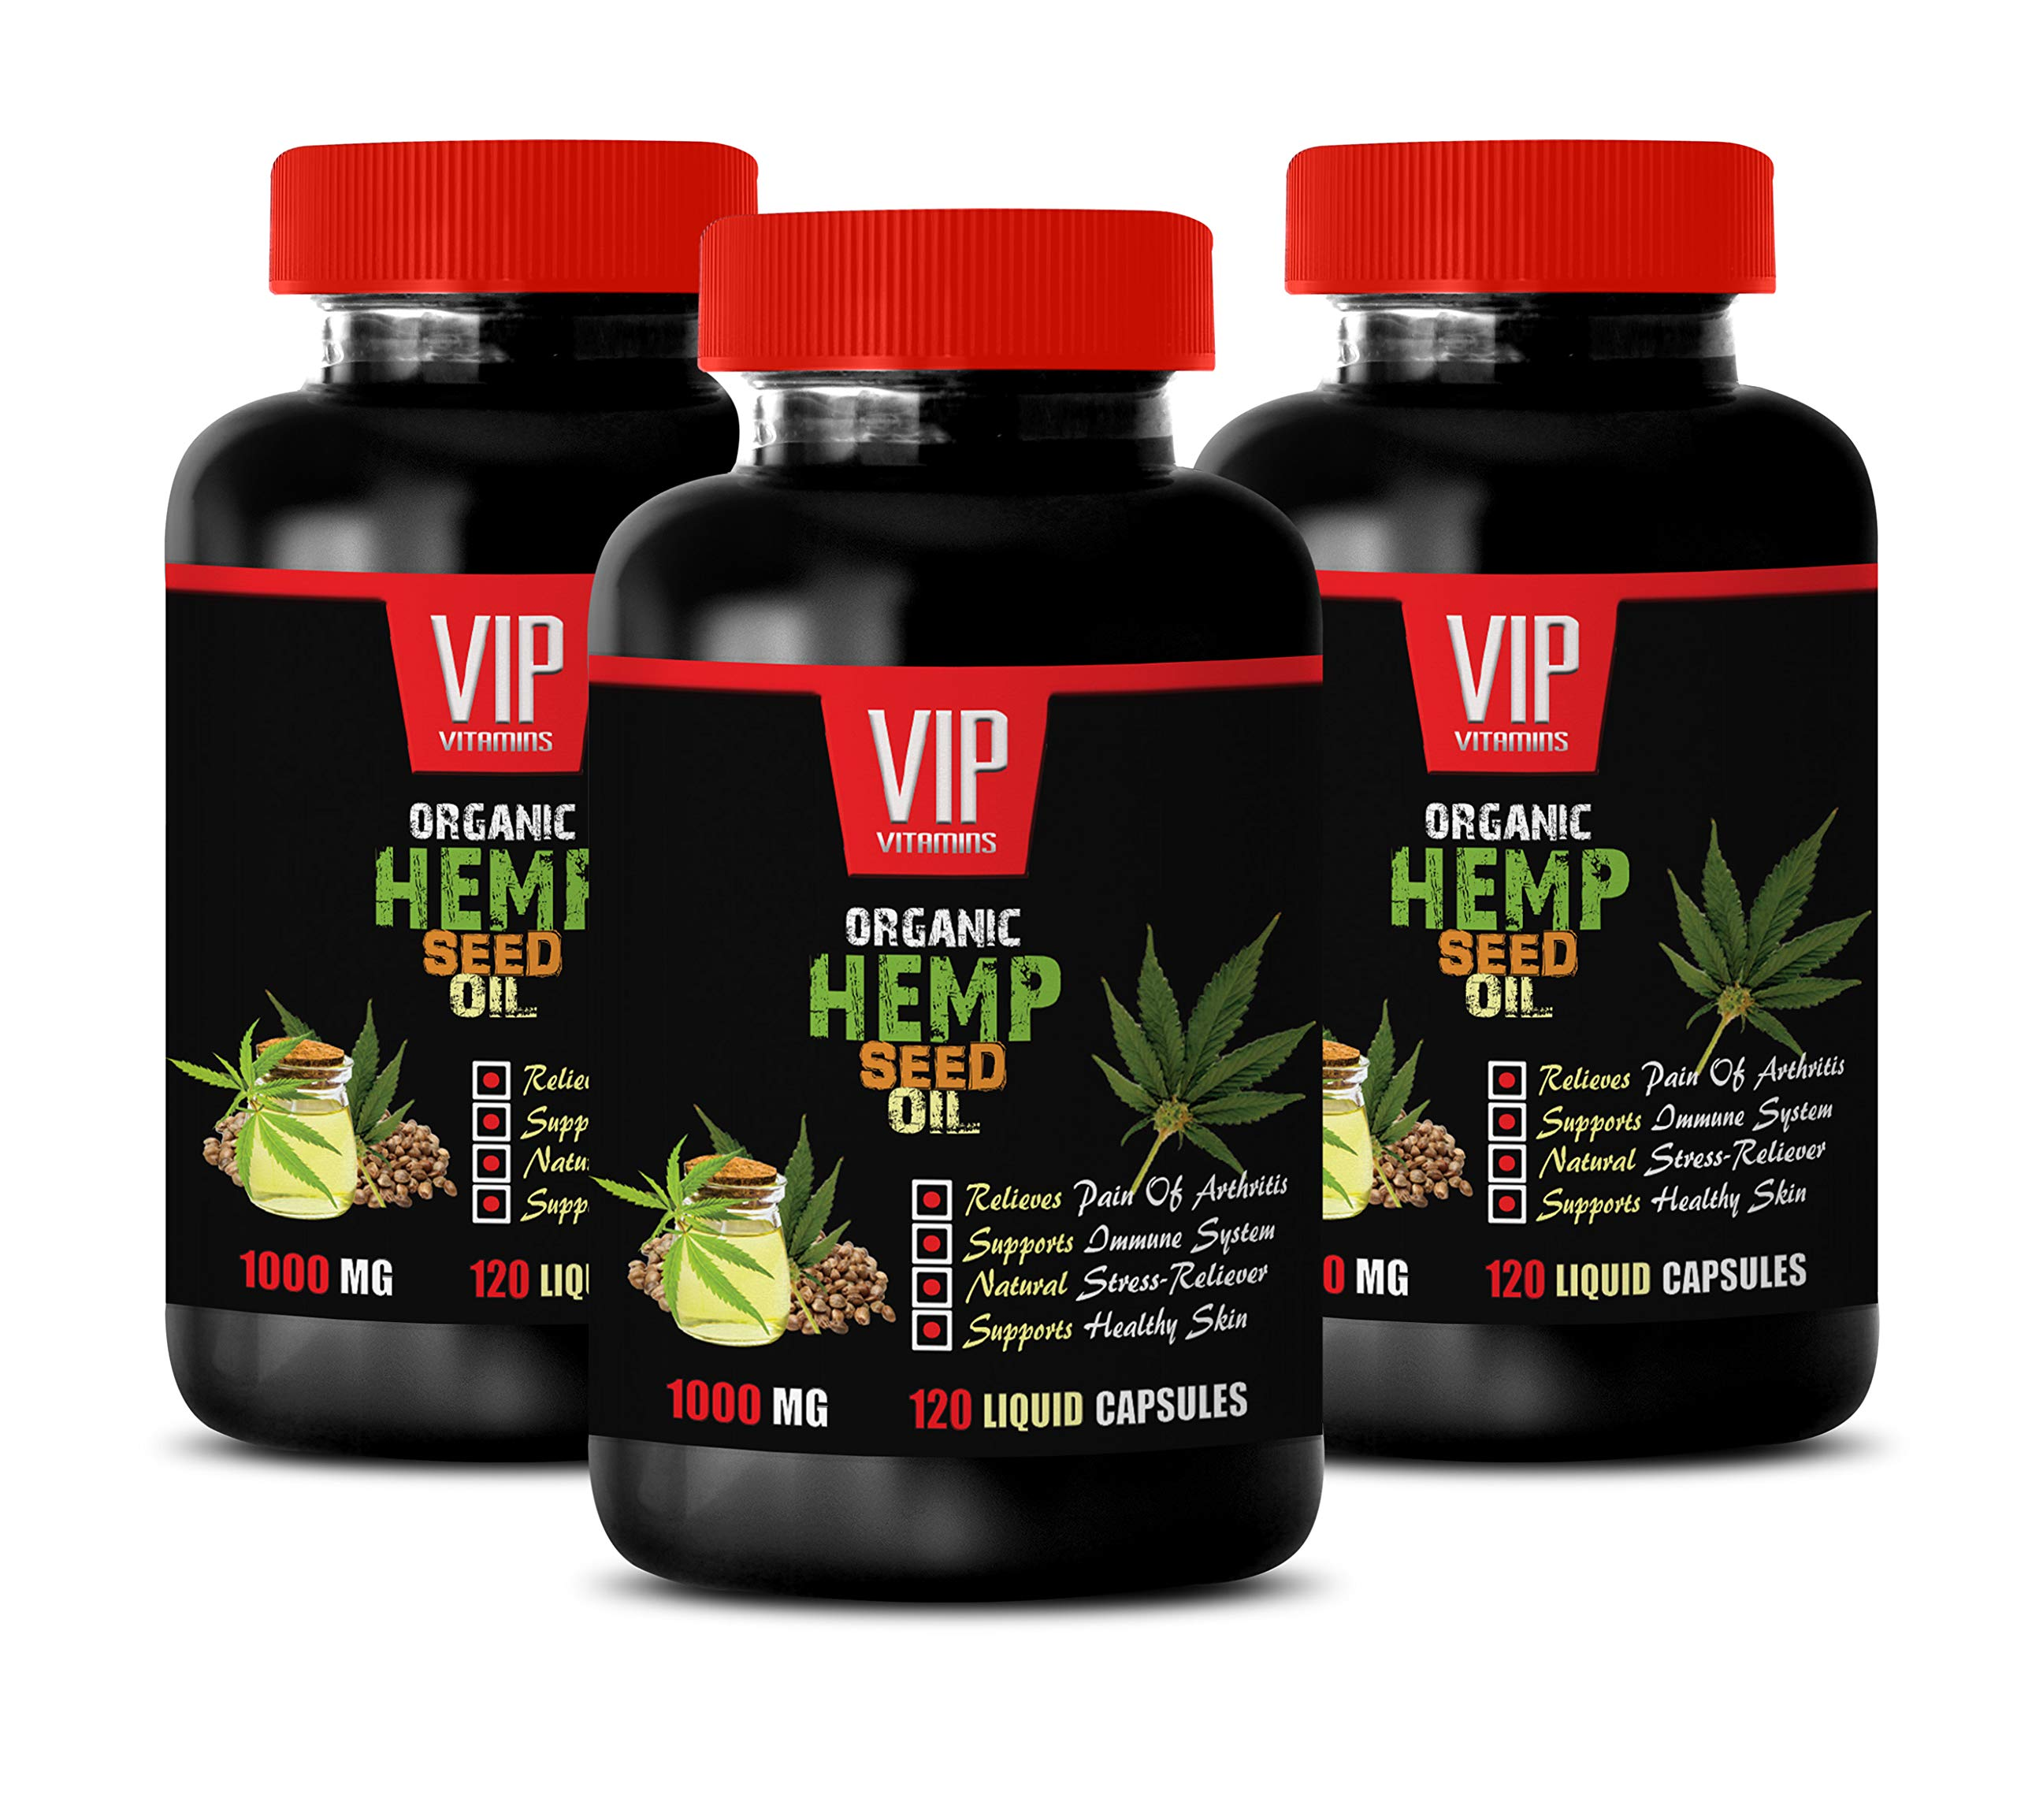 Brain Booster Supplements Focus Memory - Hemp Seed Oil Organic 1000Mg - Hemp Seed Oil Capsules Anxiety Sleep - 3 Bottles 360 Liquid Capsules